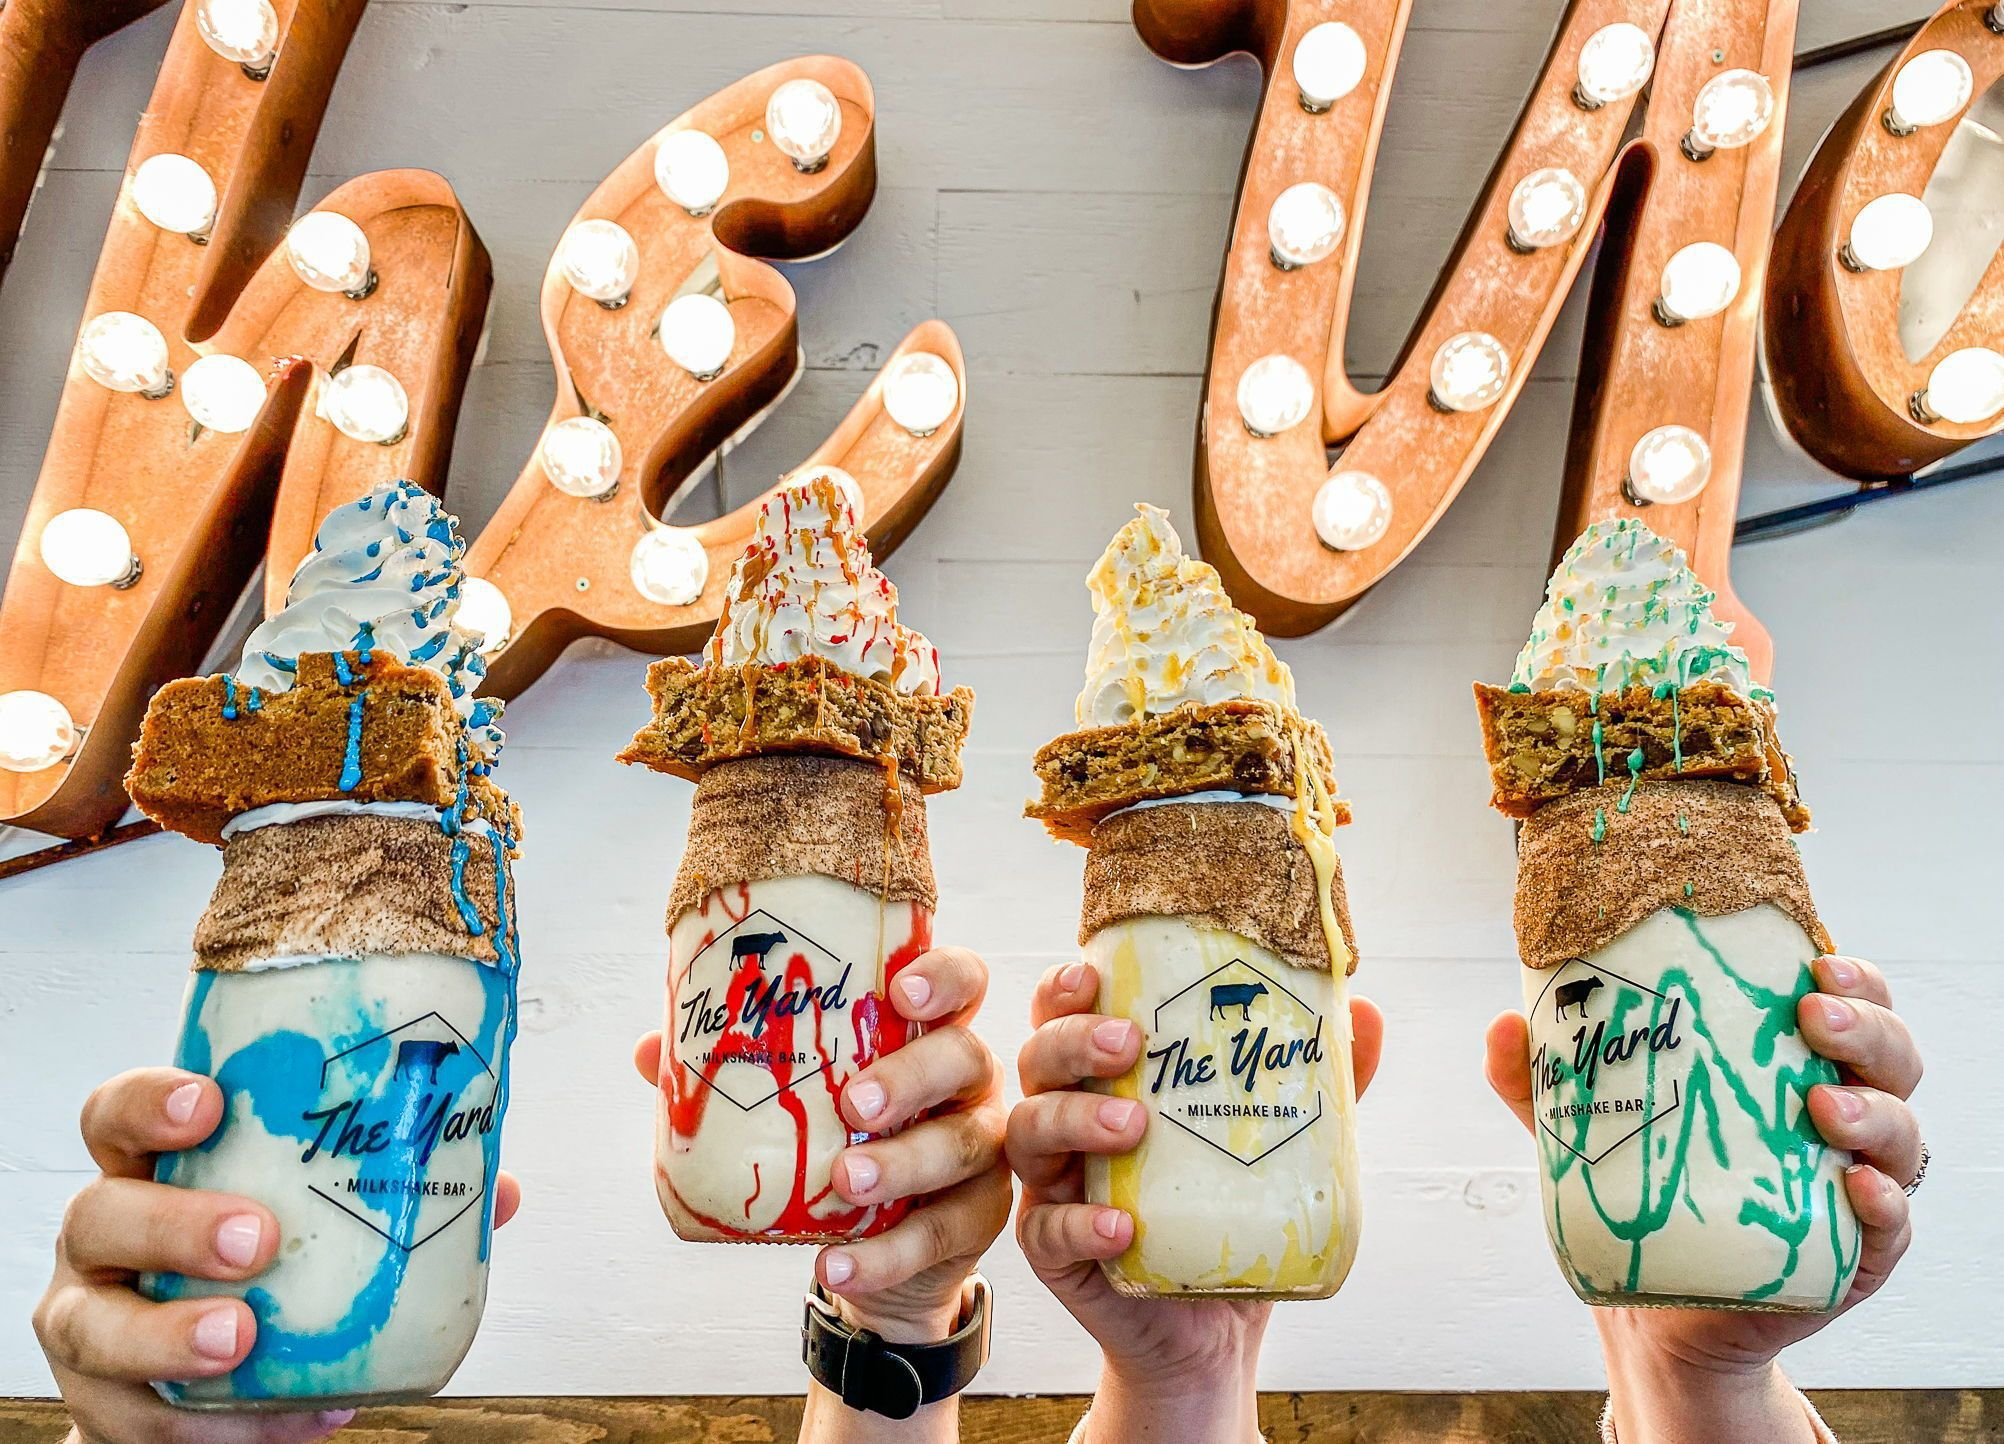 Four hands hold up mason jars filled with milkshakes swirled with colors like yellow, green, red, and blue, topped with blondies and swirls of whipped cream.